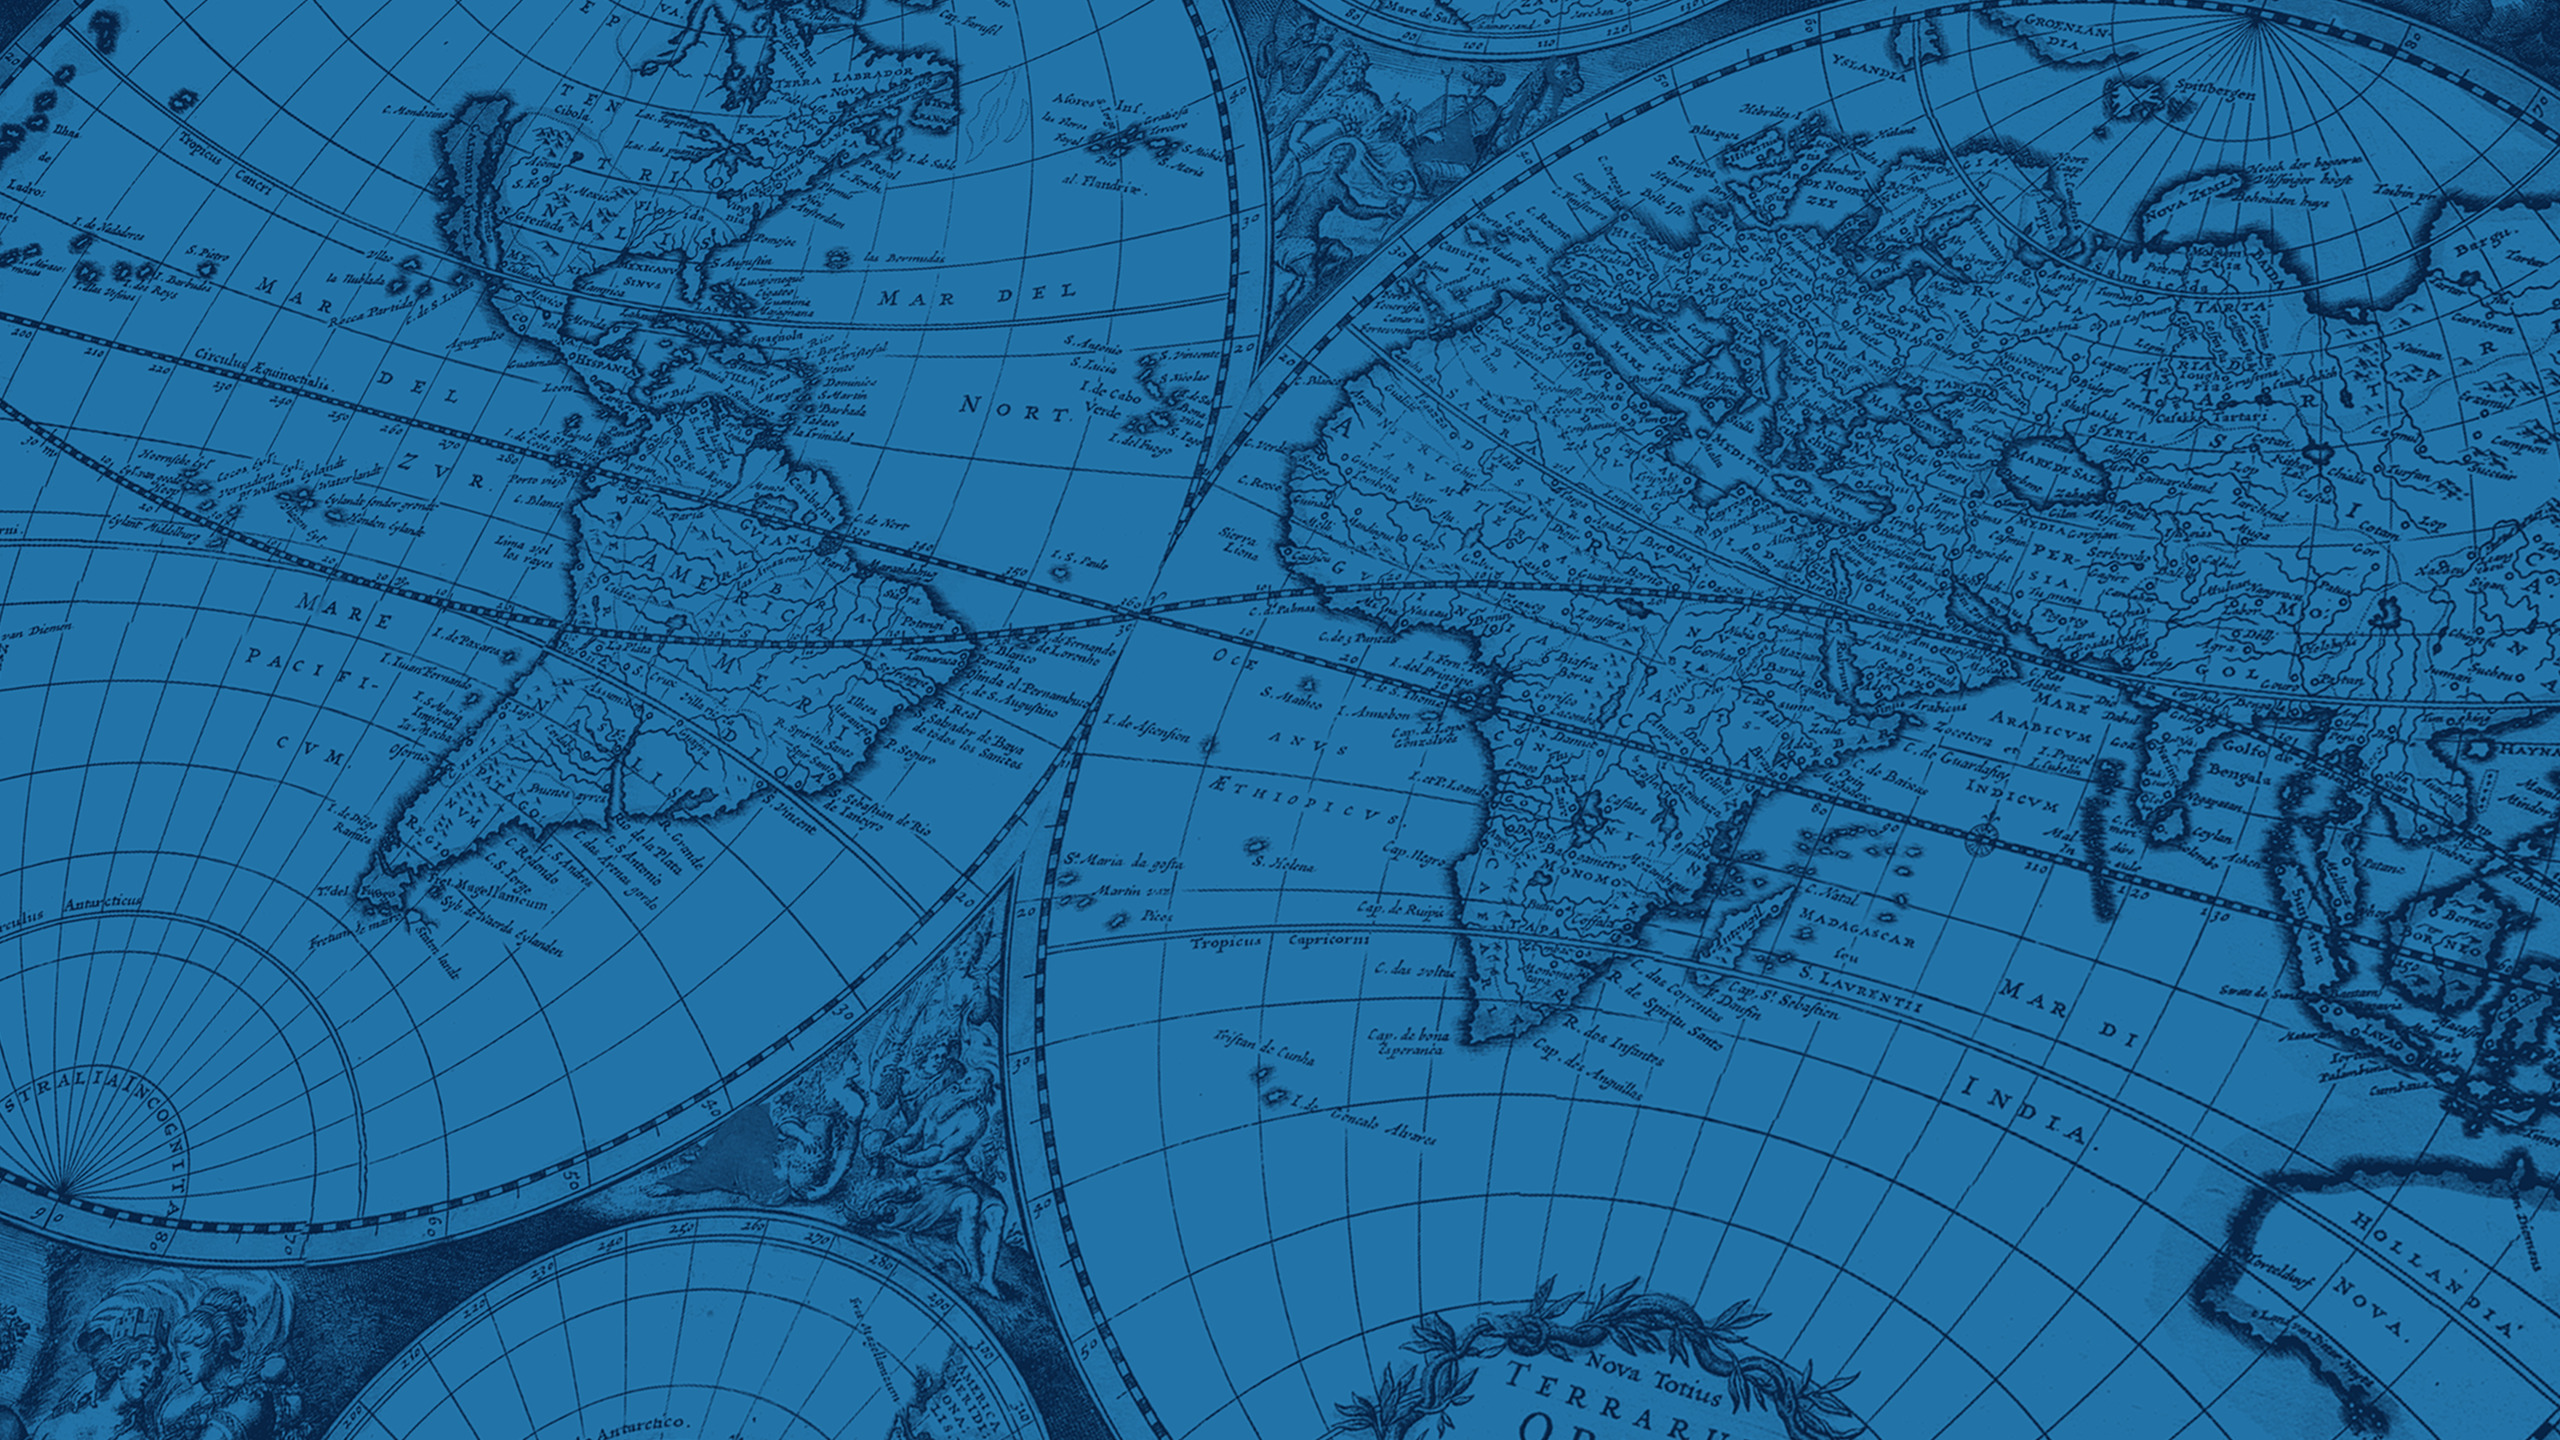 old_earth_map-wallpaper-2560x1440-perspective2-blue.jpg